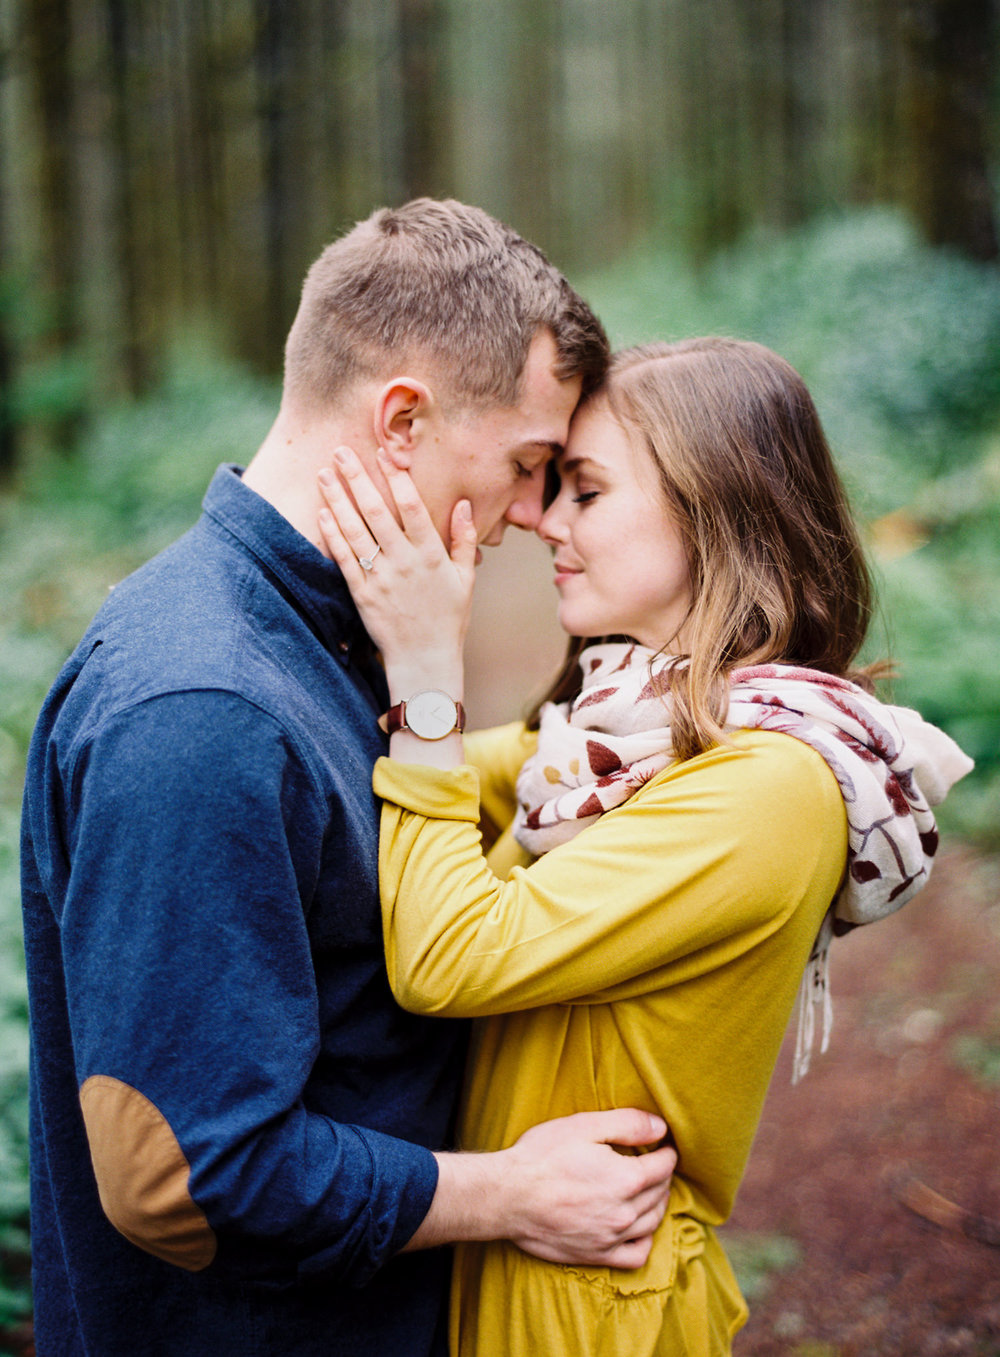 015-snoqualmie-mountain-engagement-session-seattle-film-wedding-photographer-ryan-flynn.jpg